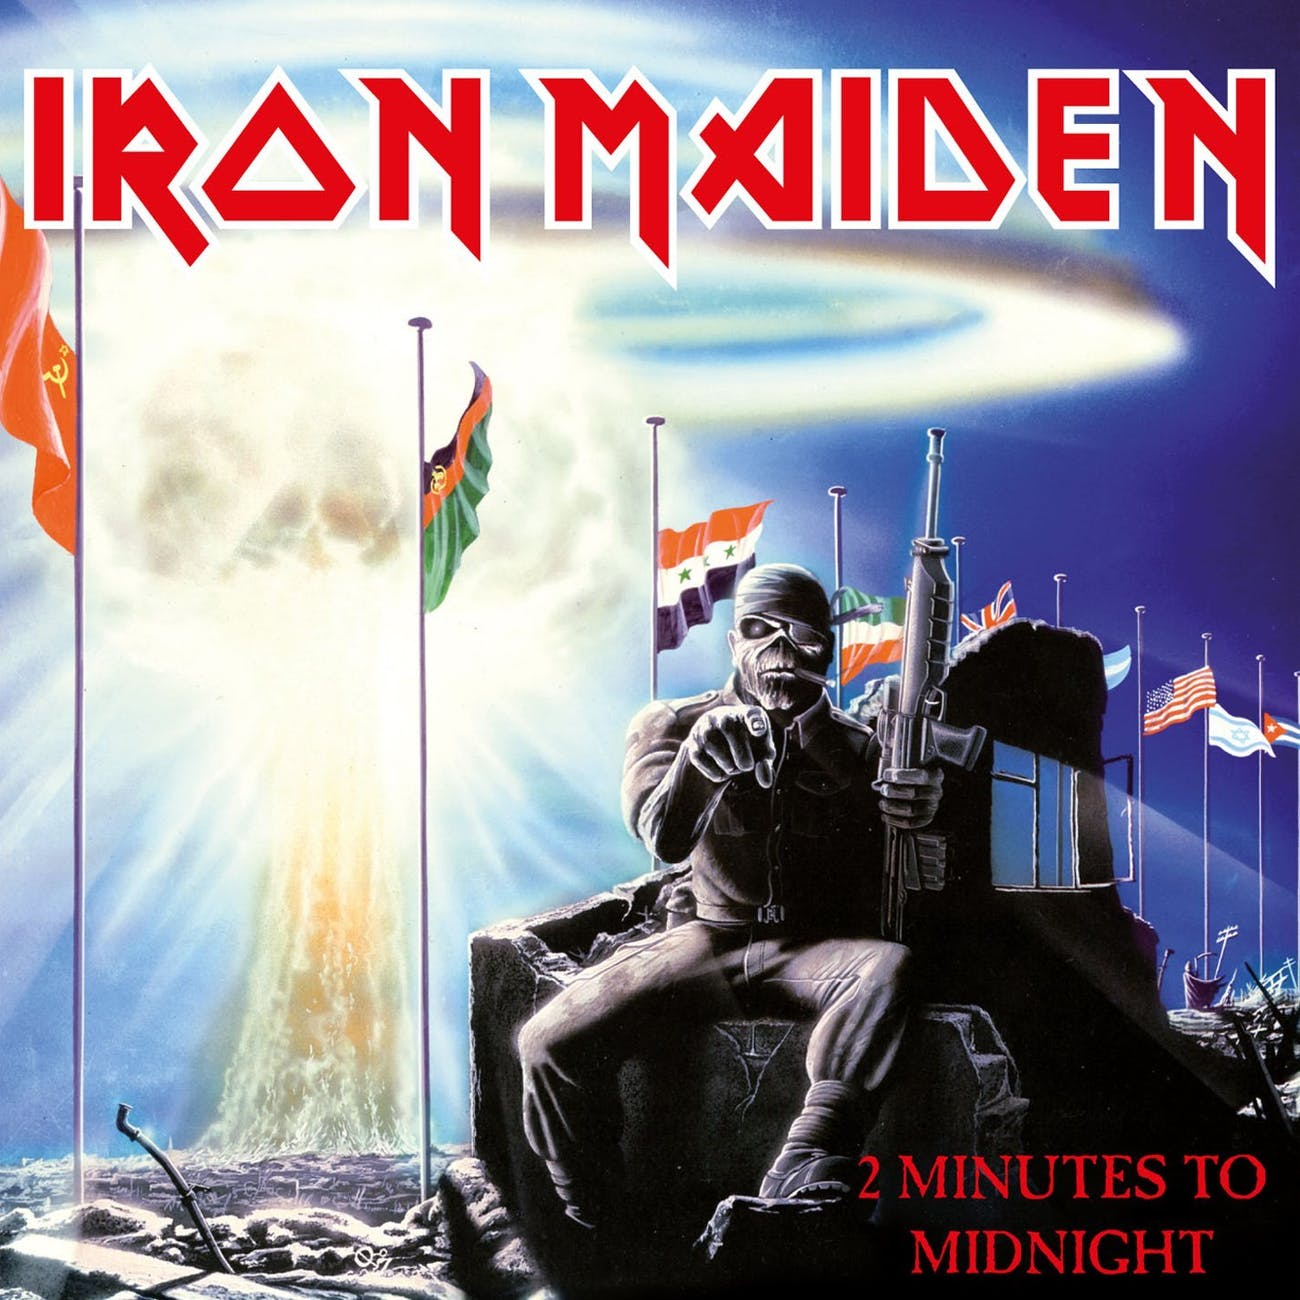 Iron Maiden 2 Minutes to Midnight cover